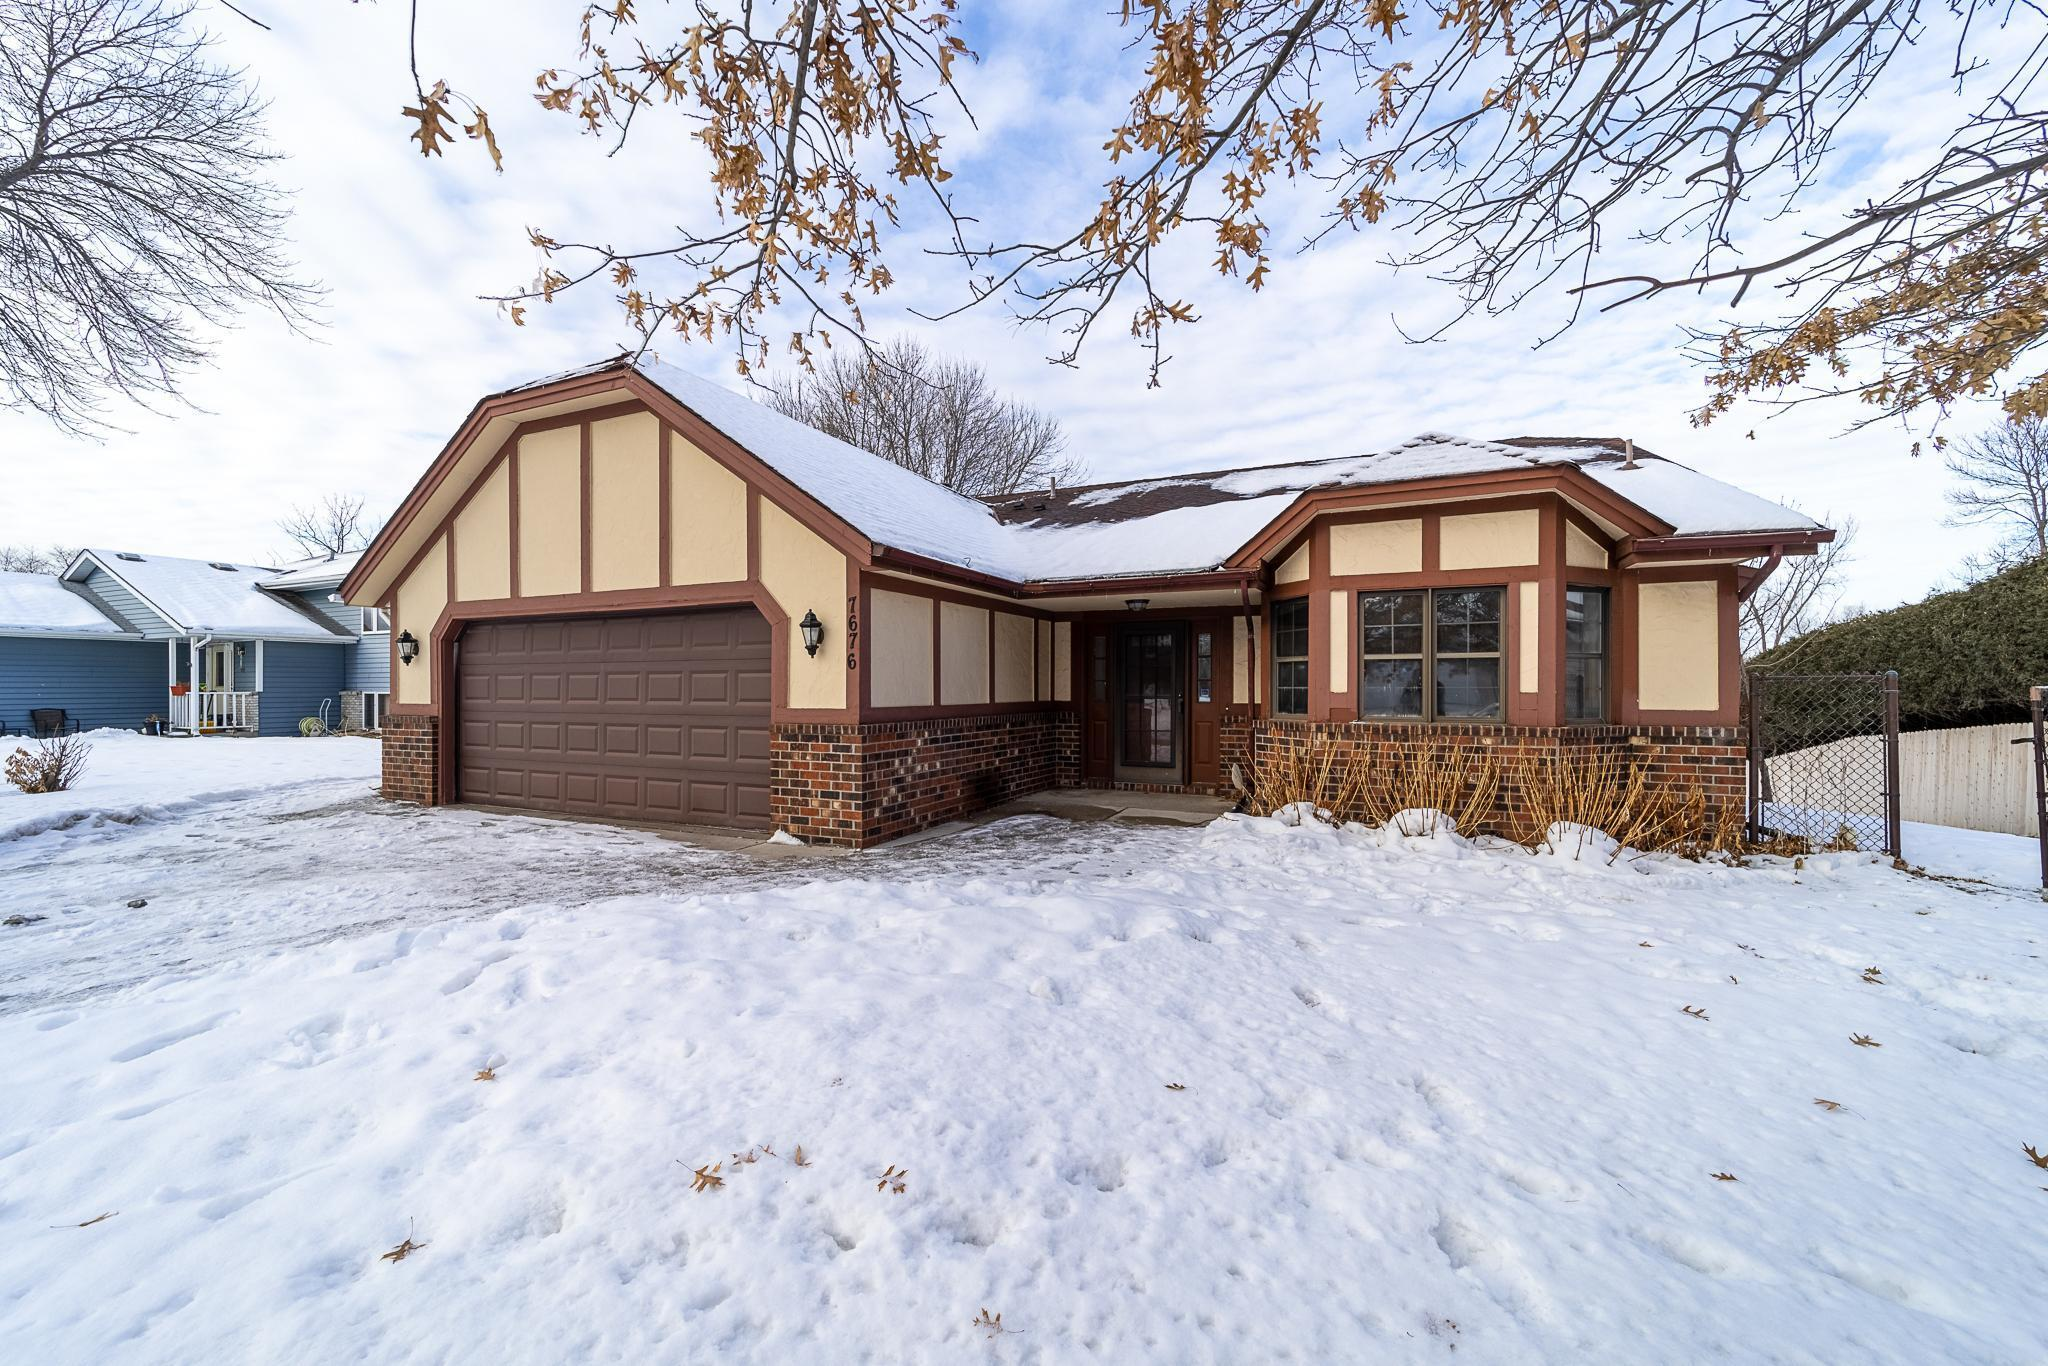 7676 Upper 24th Street N Property Photo - Oakdale, MN real estate listing